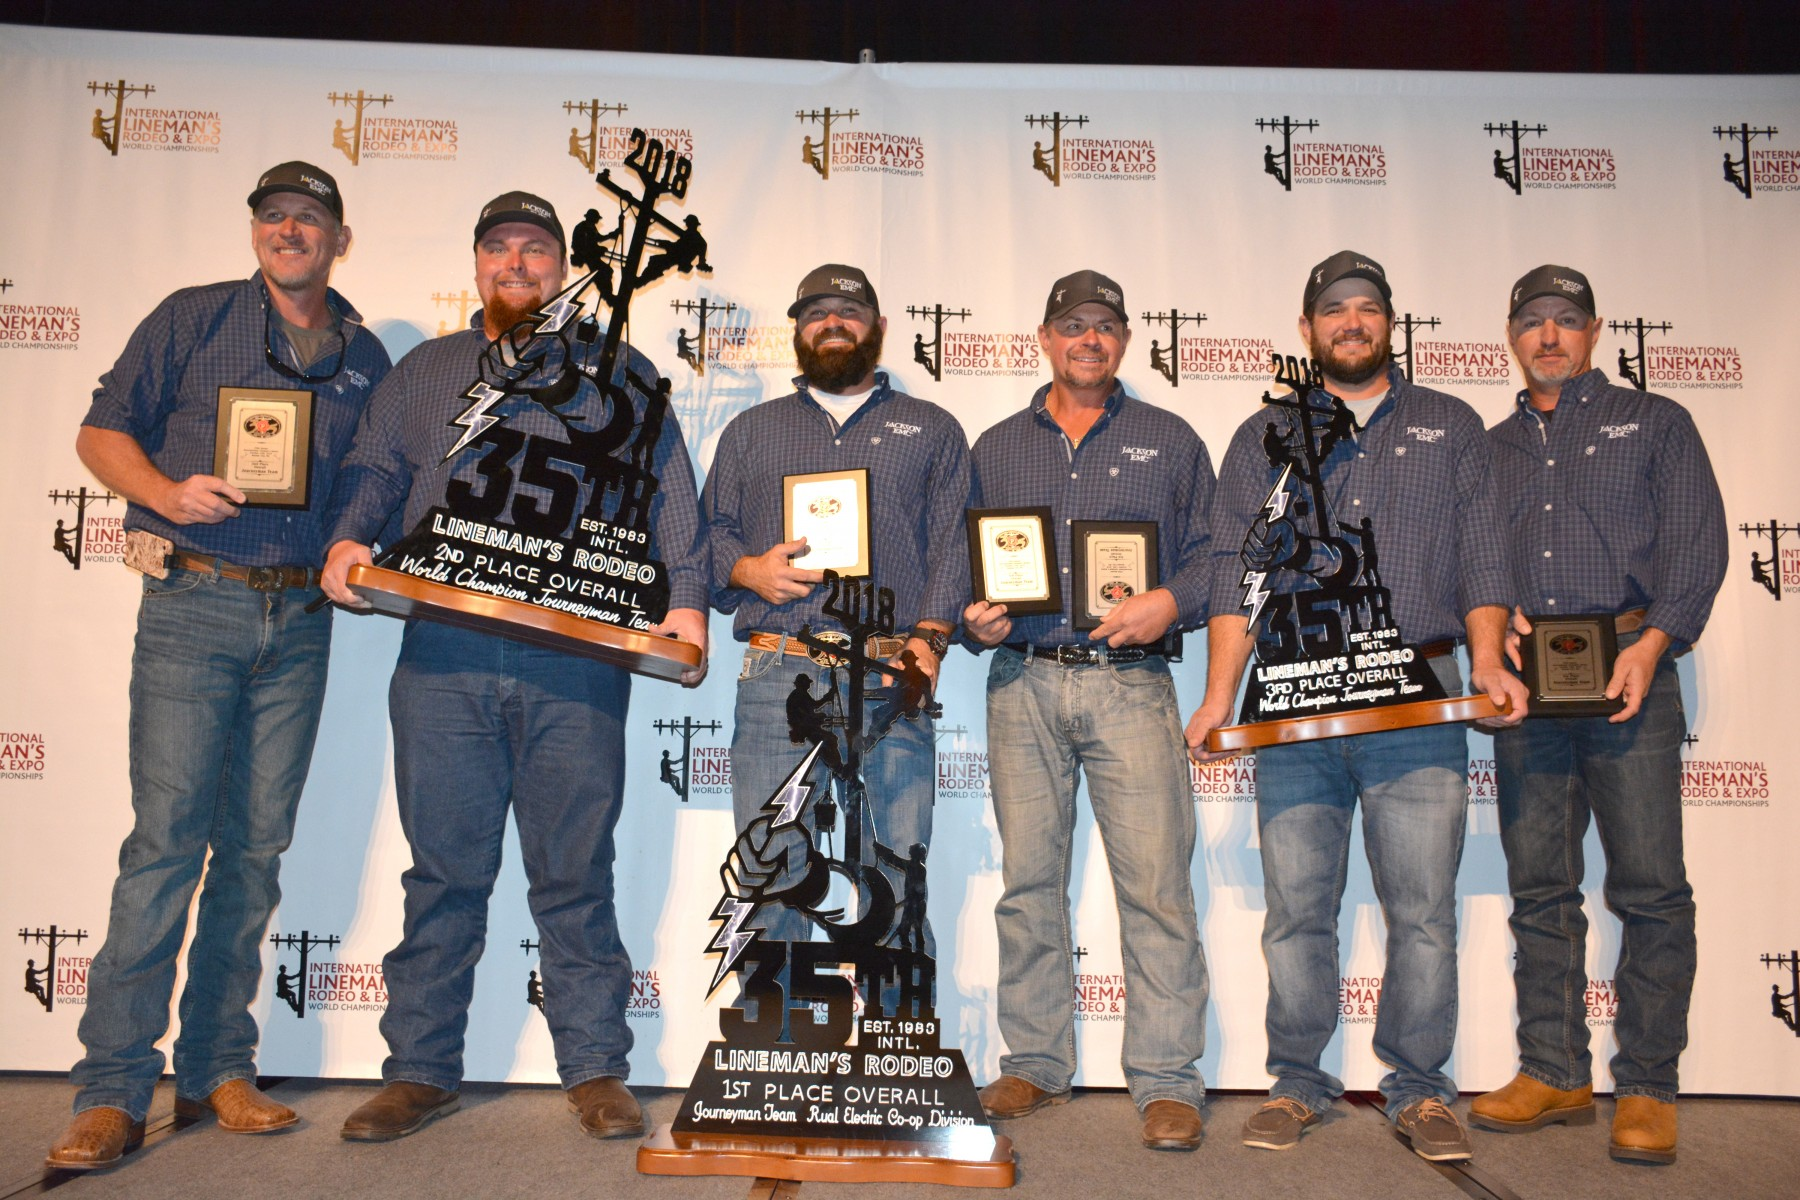 Intl Lineman's Rodeo Final Winners 2018